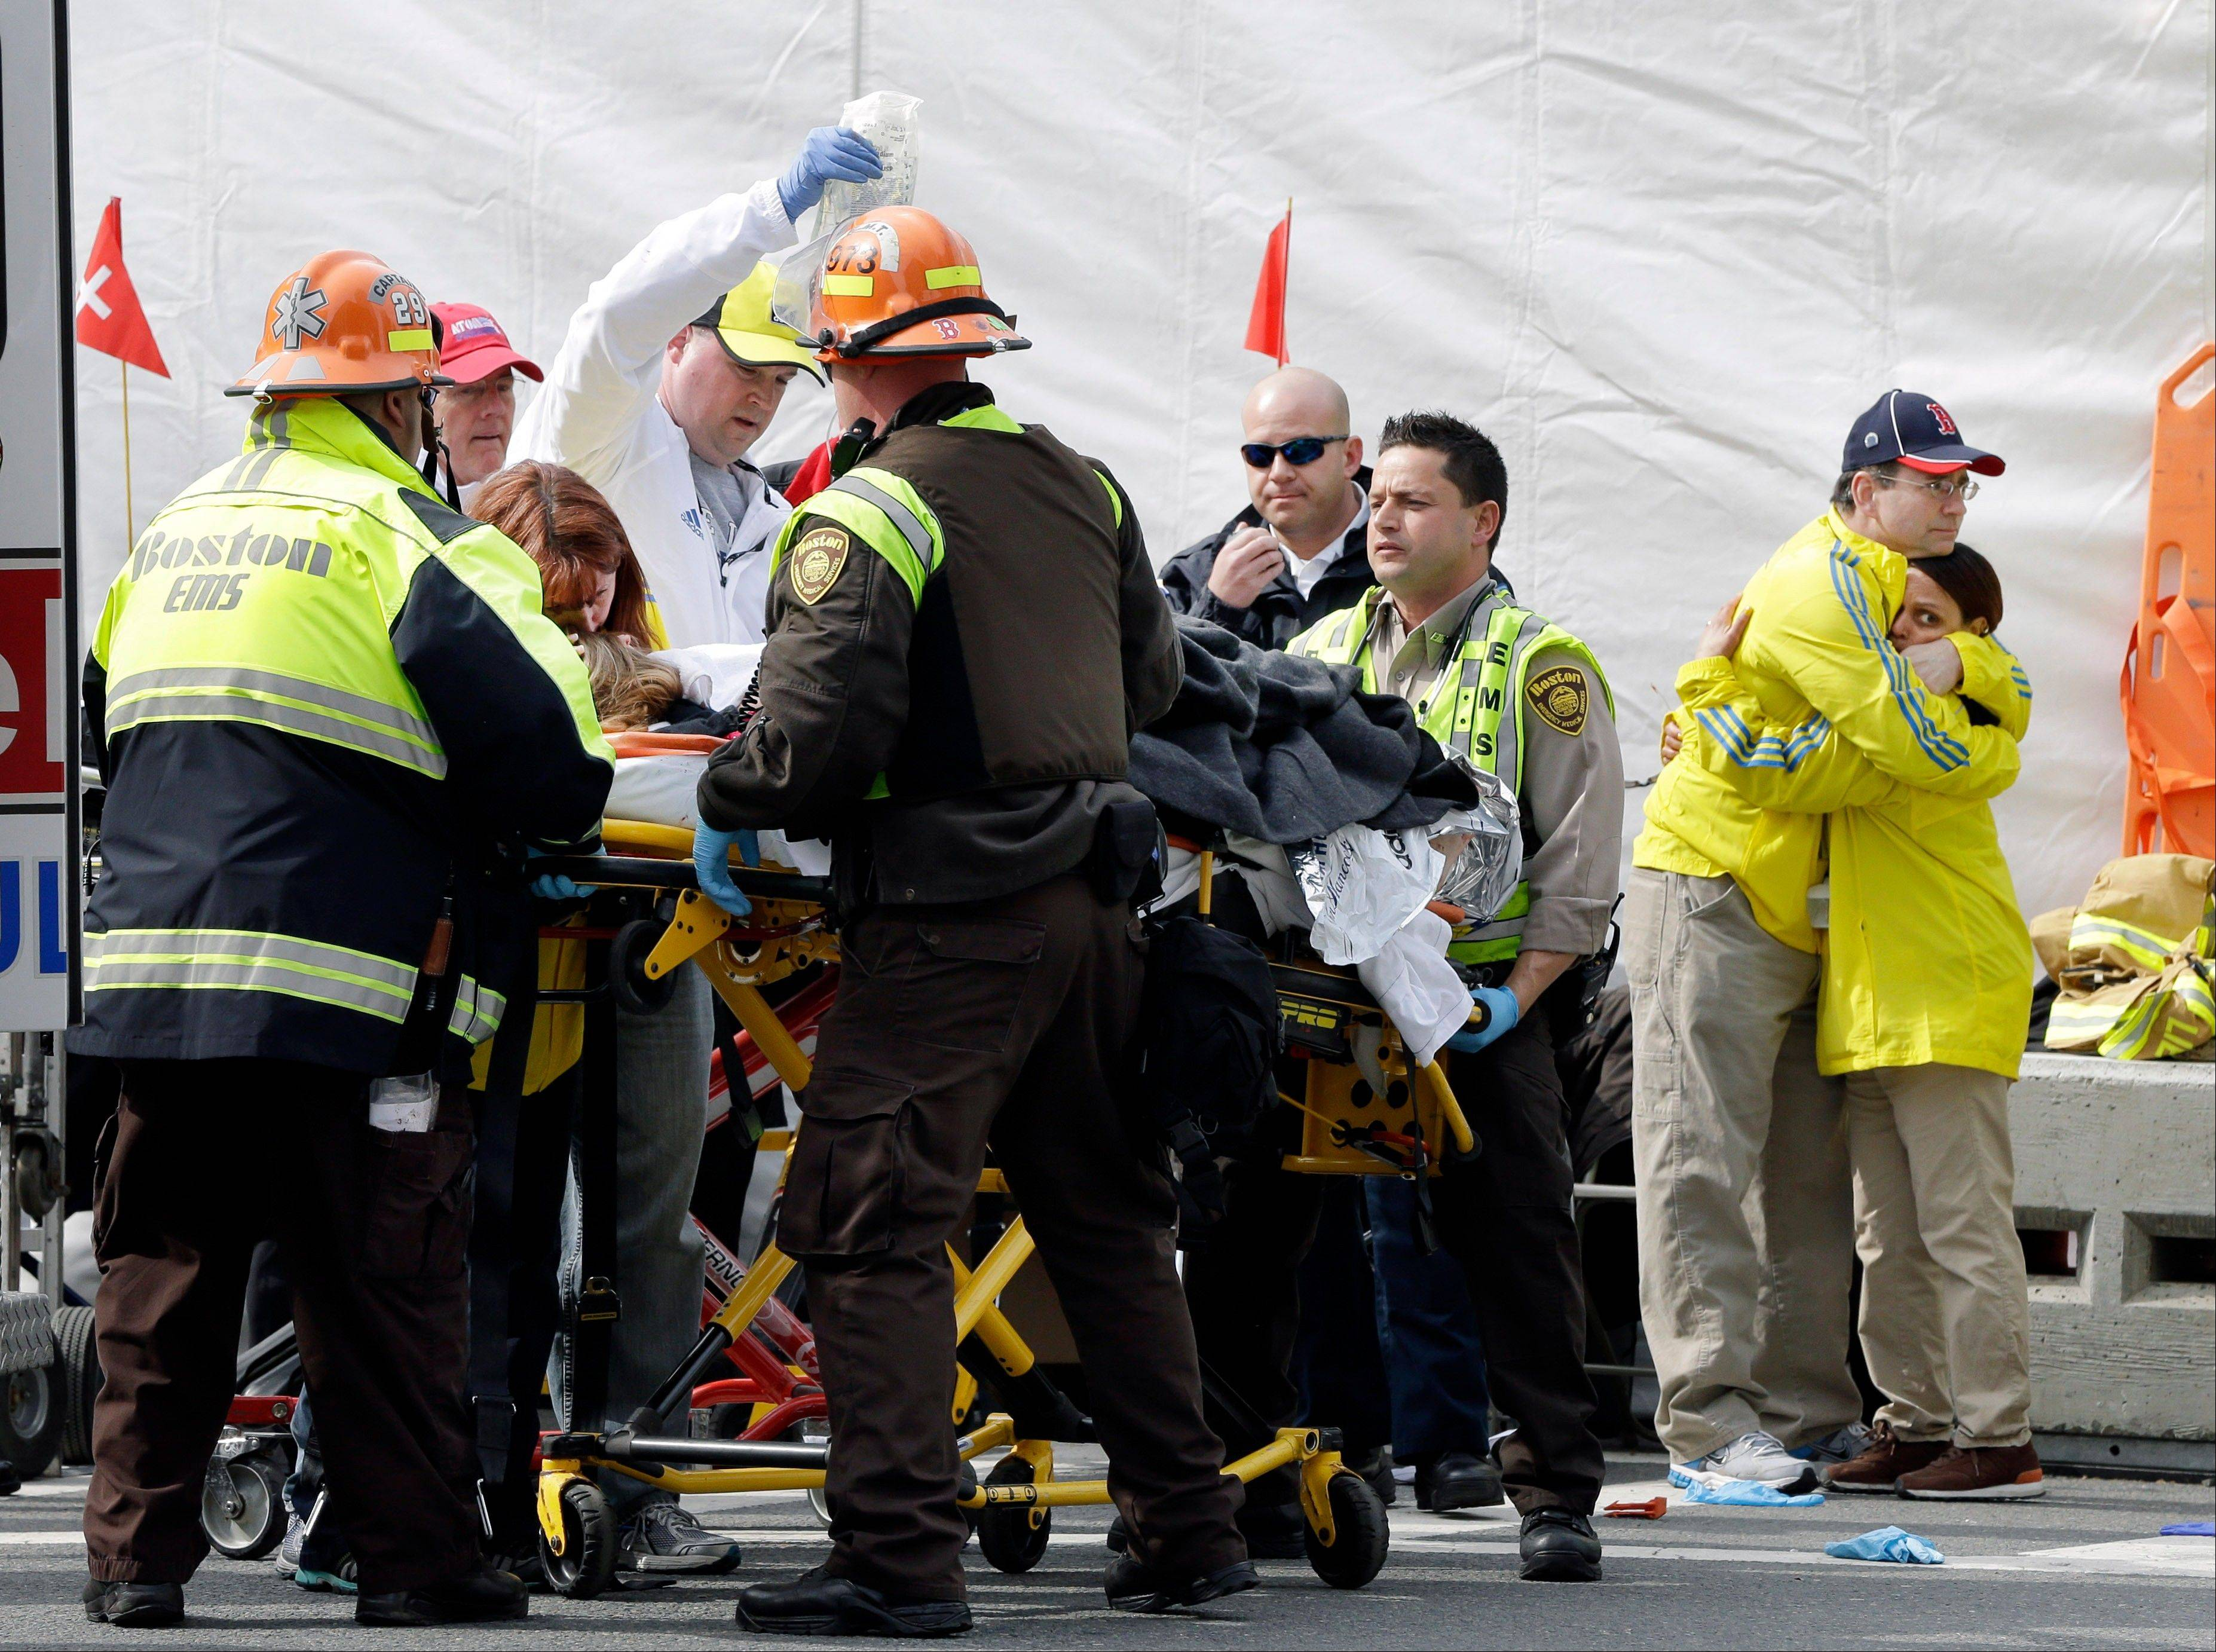 Two Boston Marathon volunteers hug each other, at right, as an injured person is loaded into an ambulance in the aftermath of two blasts which exploded near the finish line of the Boston Marathon in Boston, Monday, April 15, 2013.